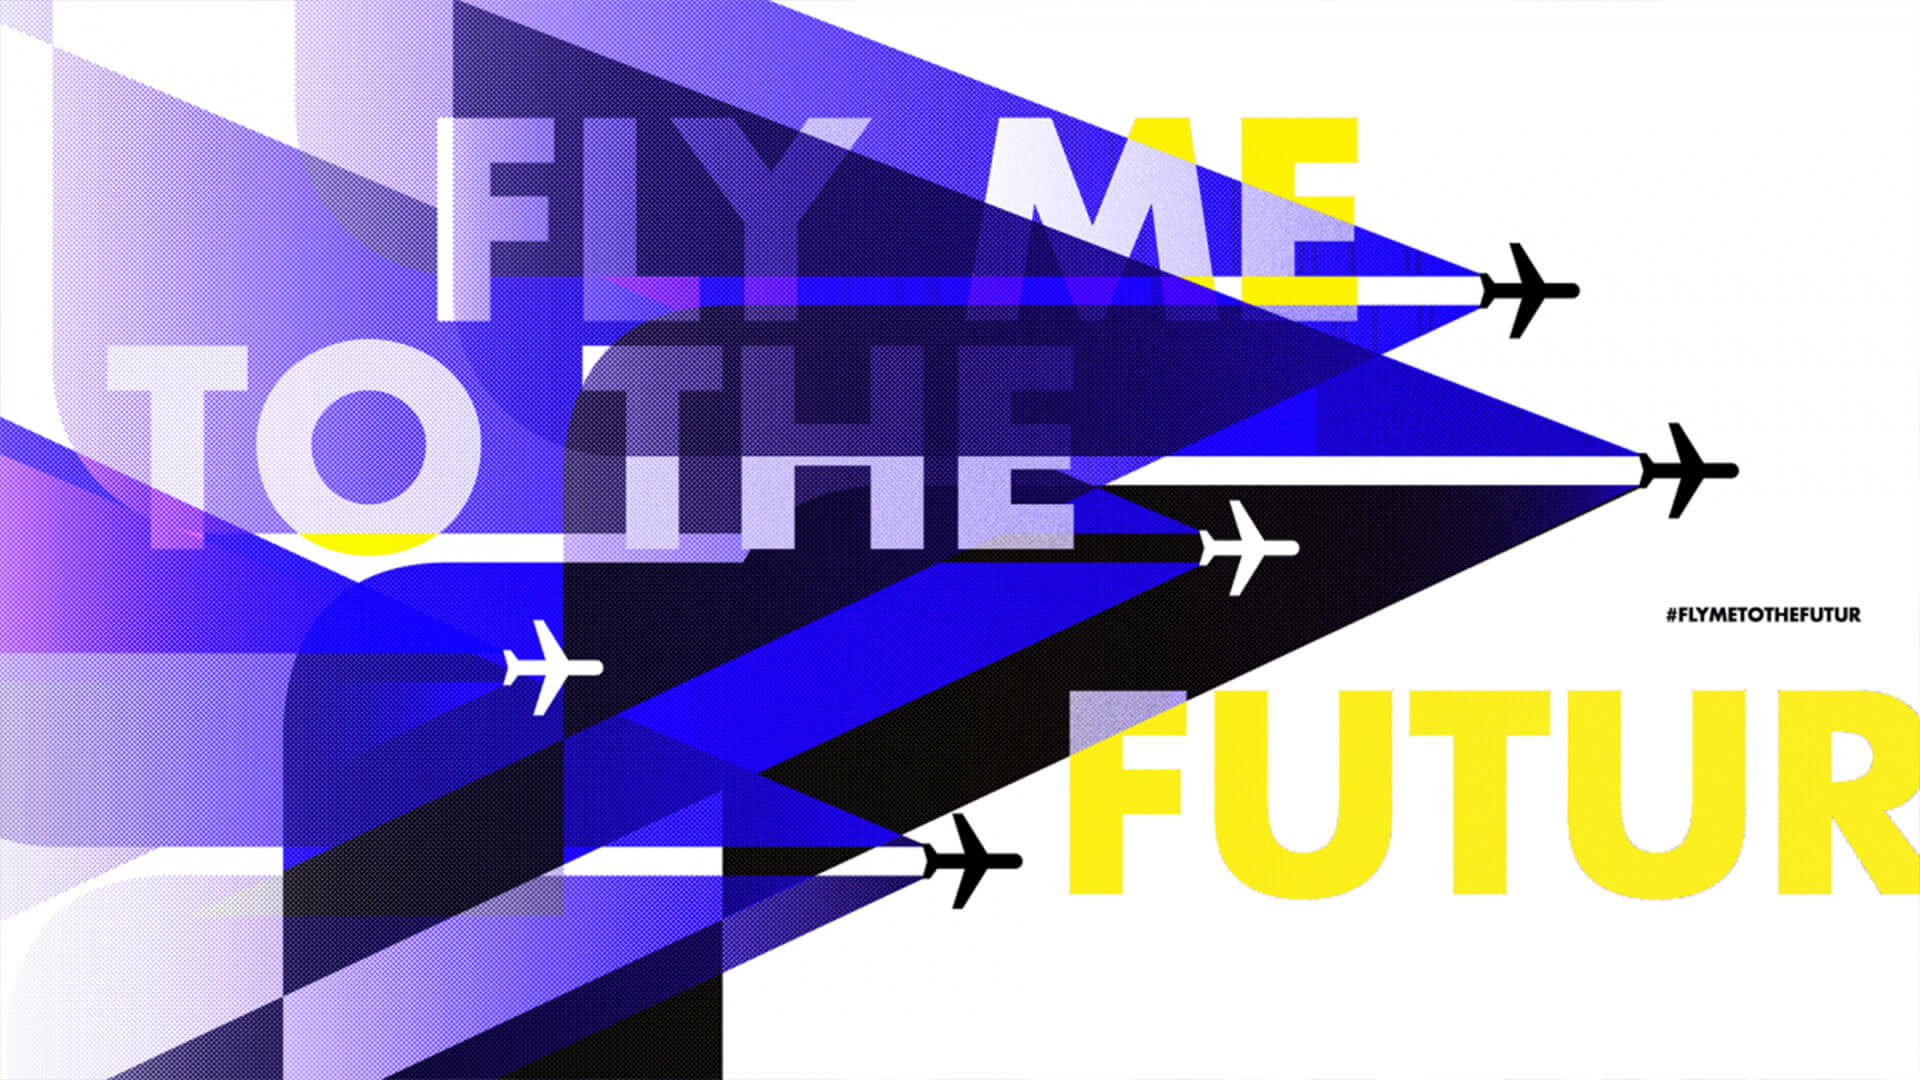 Fly Me to The Futur: 100K Subscribers Giveaway